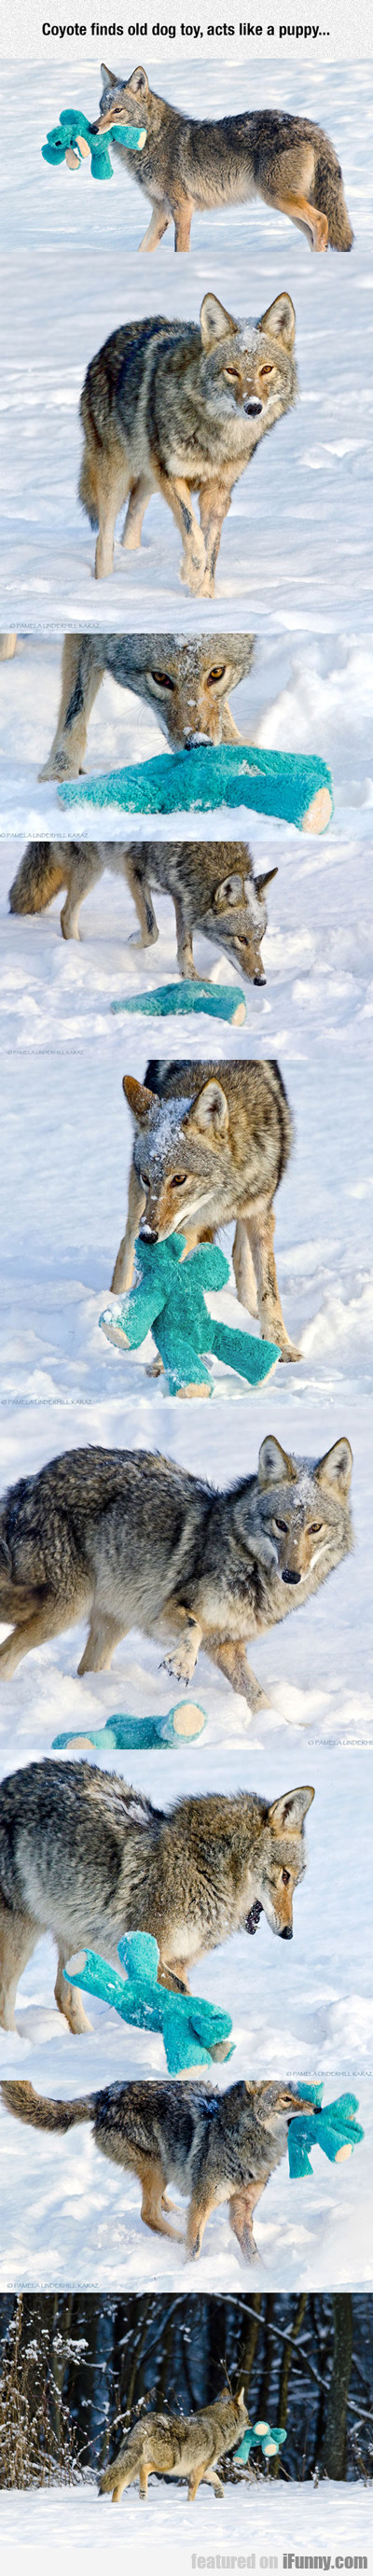 Coyote Playing With Dog Toy...